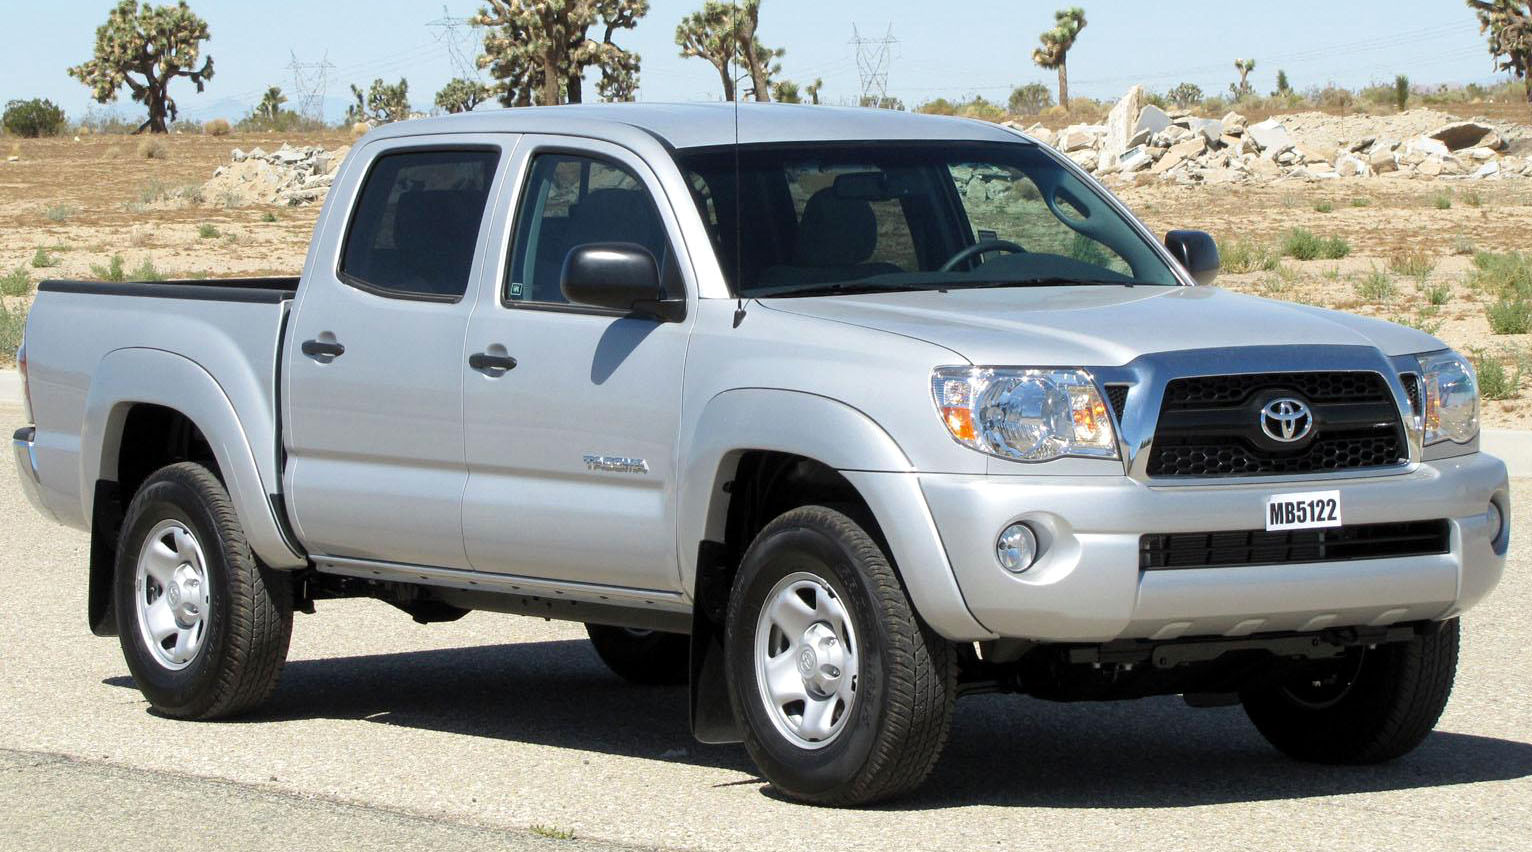 Second Generation Tacoma Wiring Diagram 2008 Trusted 2011 Toyota Tractor Construction Plant Wiki Fandom Powered Silverado Hd